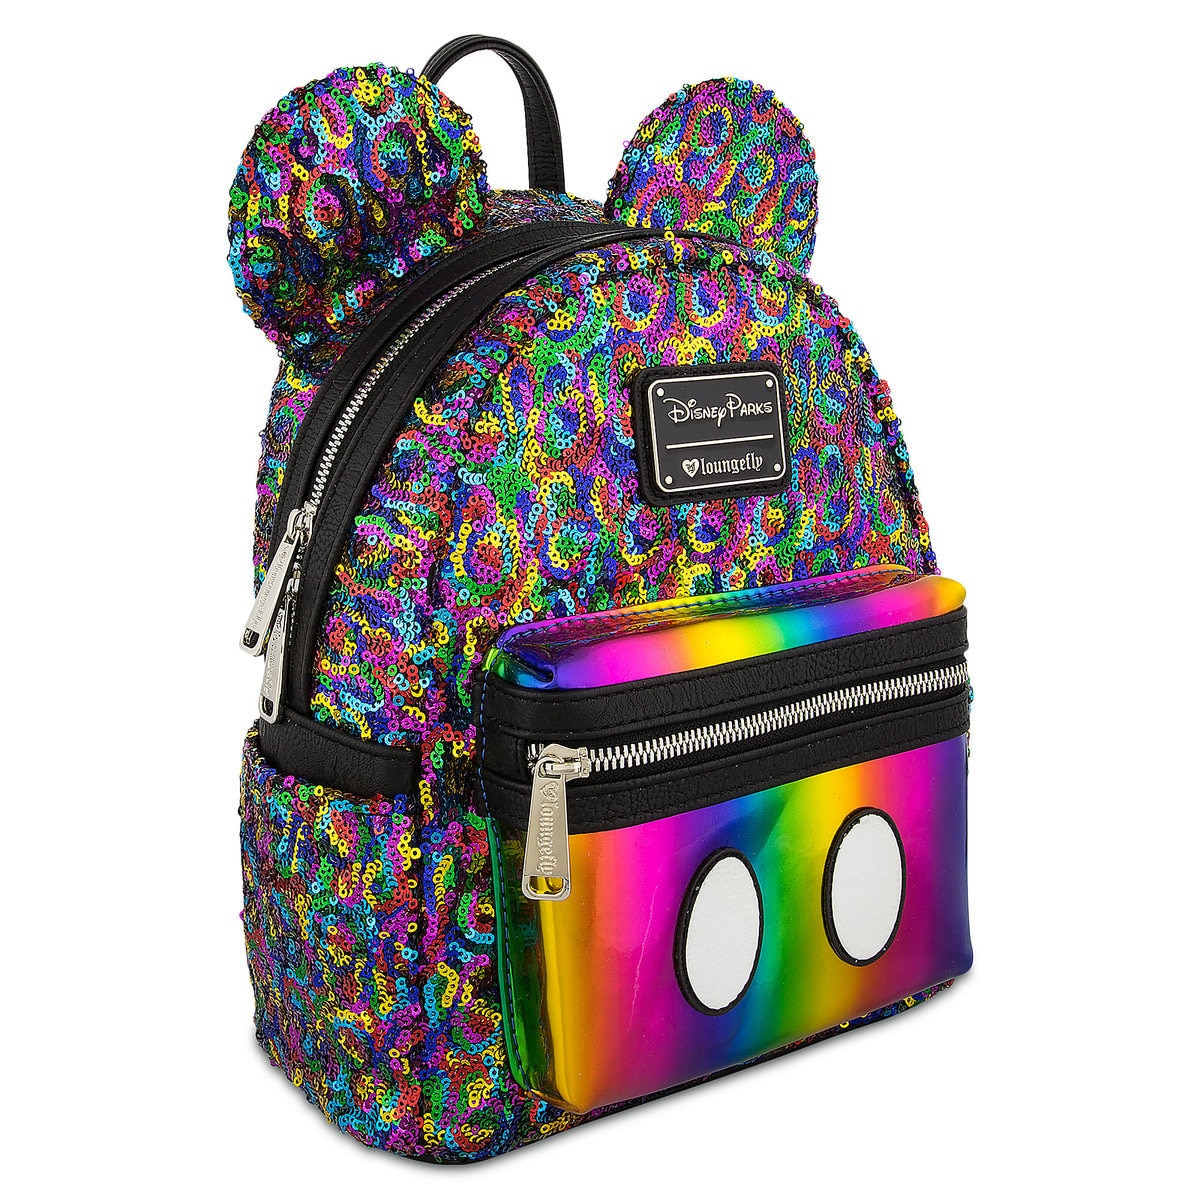 0fb522b2557 Product Image of Mickey Mouse Rainbow Mini Backpack by Loungefly   1